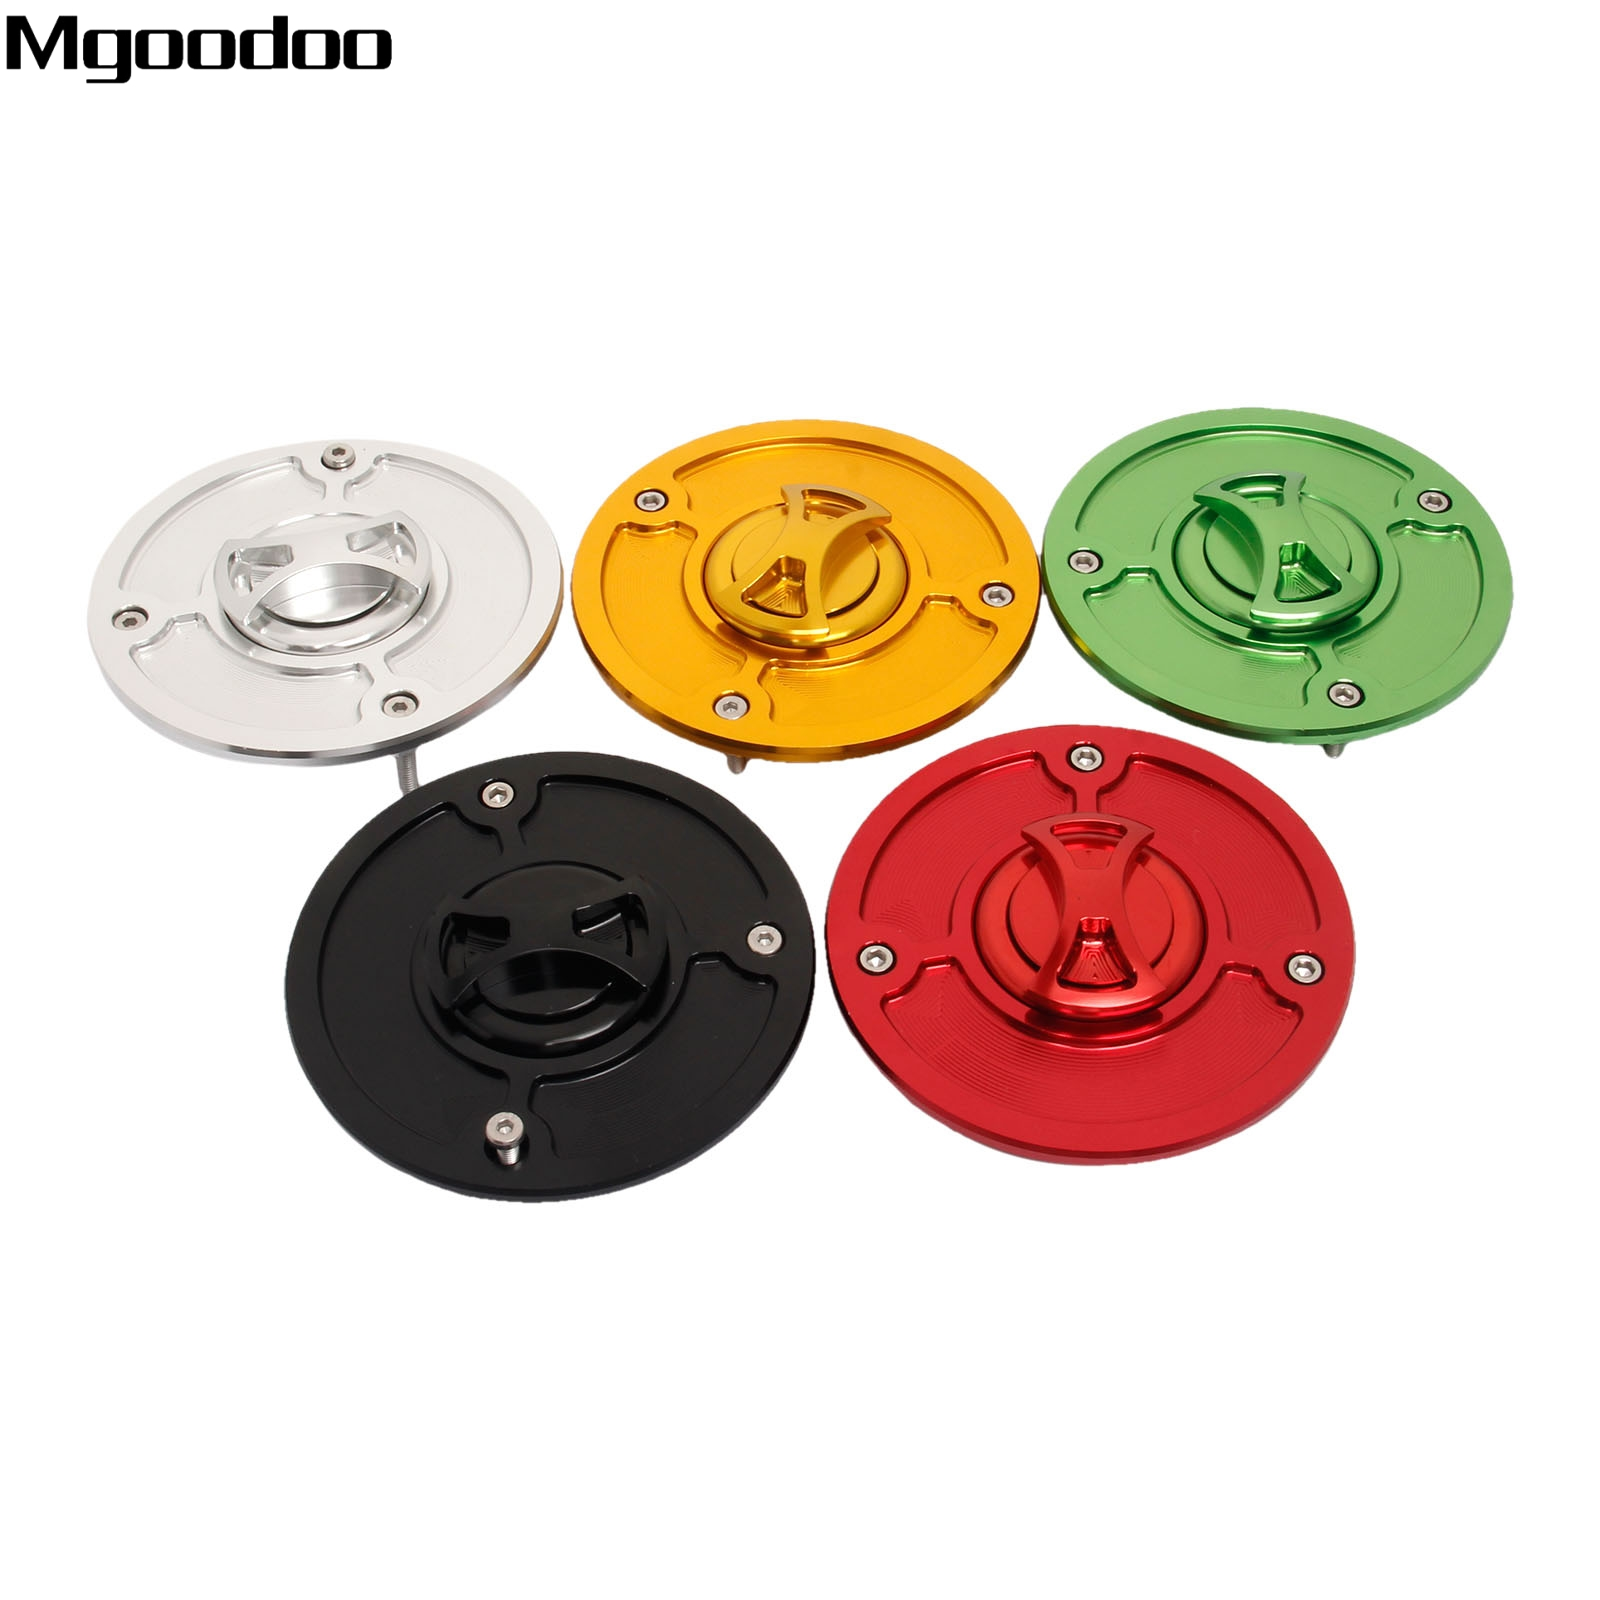 Mgoodoo CNC Aluminum Keyless Fuel Tank Gas Cap Cover + Rubber Seal For KTM DUKE 125 200 250 All Years Motorcycle Accessories New<br>